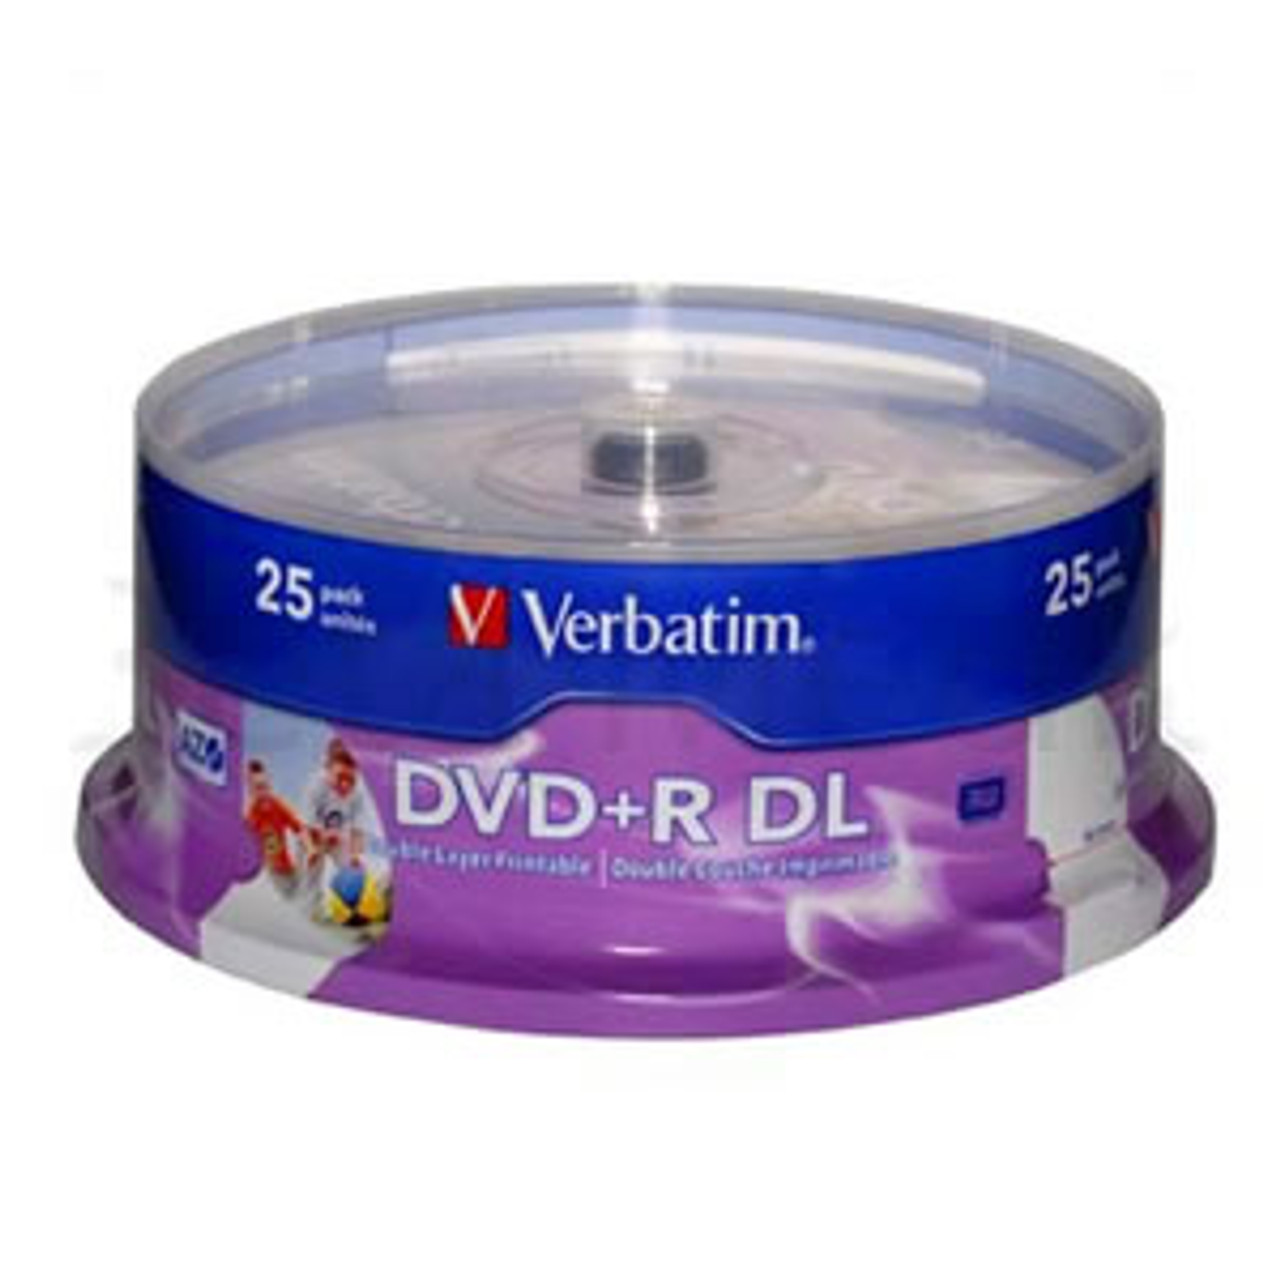 Product image for Verbatim Double Layer DVD+R in White Top Printable 25pcs | CX Computer Superstore